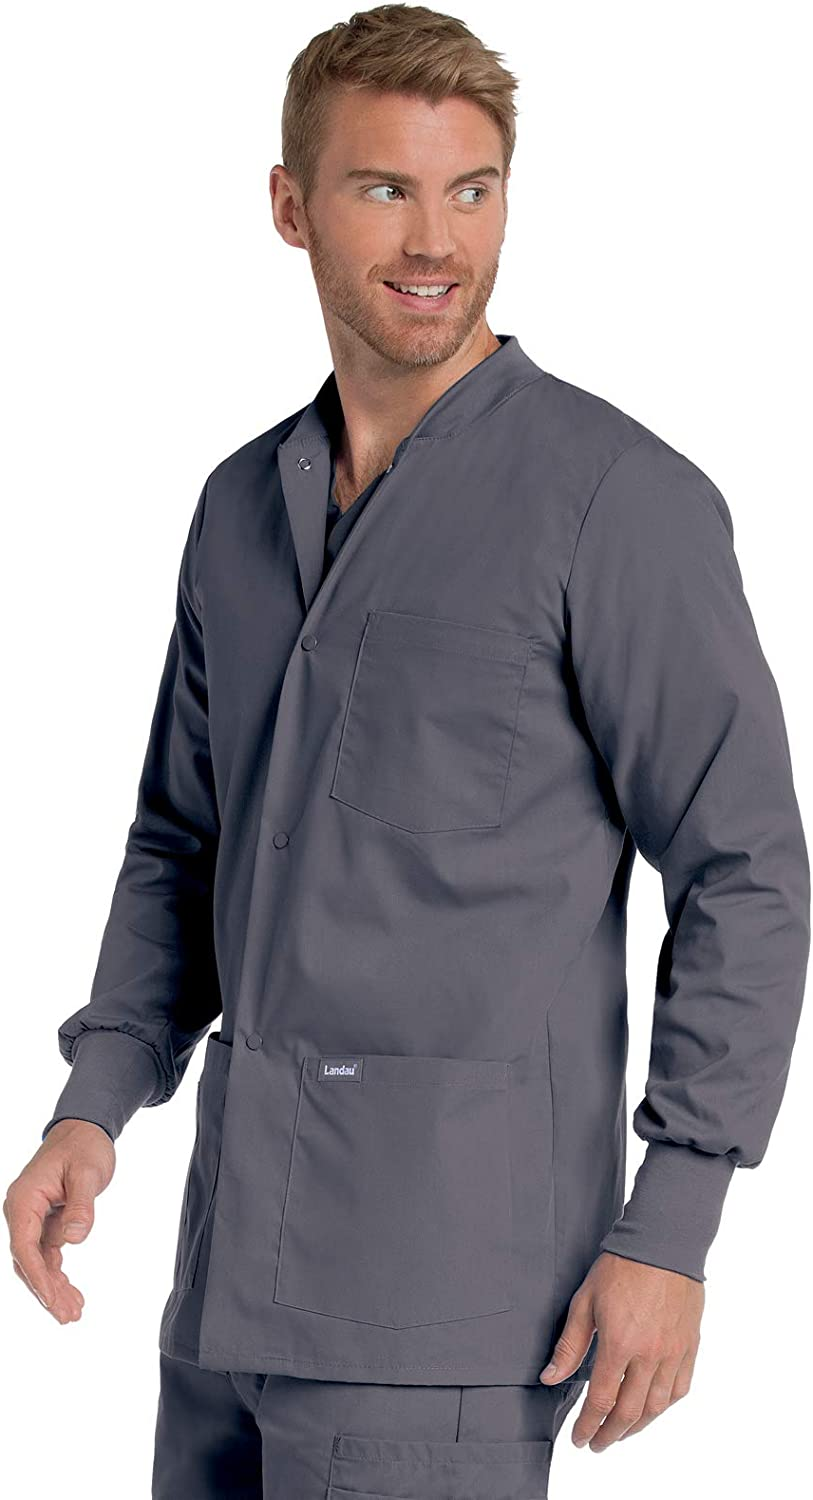 Landau Mens Premium 4-Pocket Classic Fit Warm-Up Medical Scrub Jacket